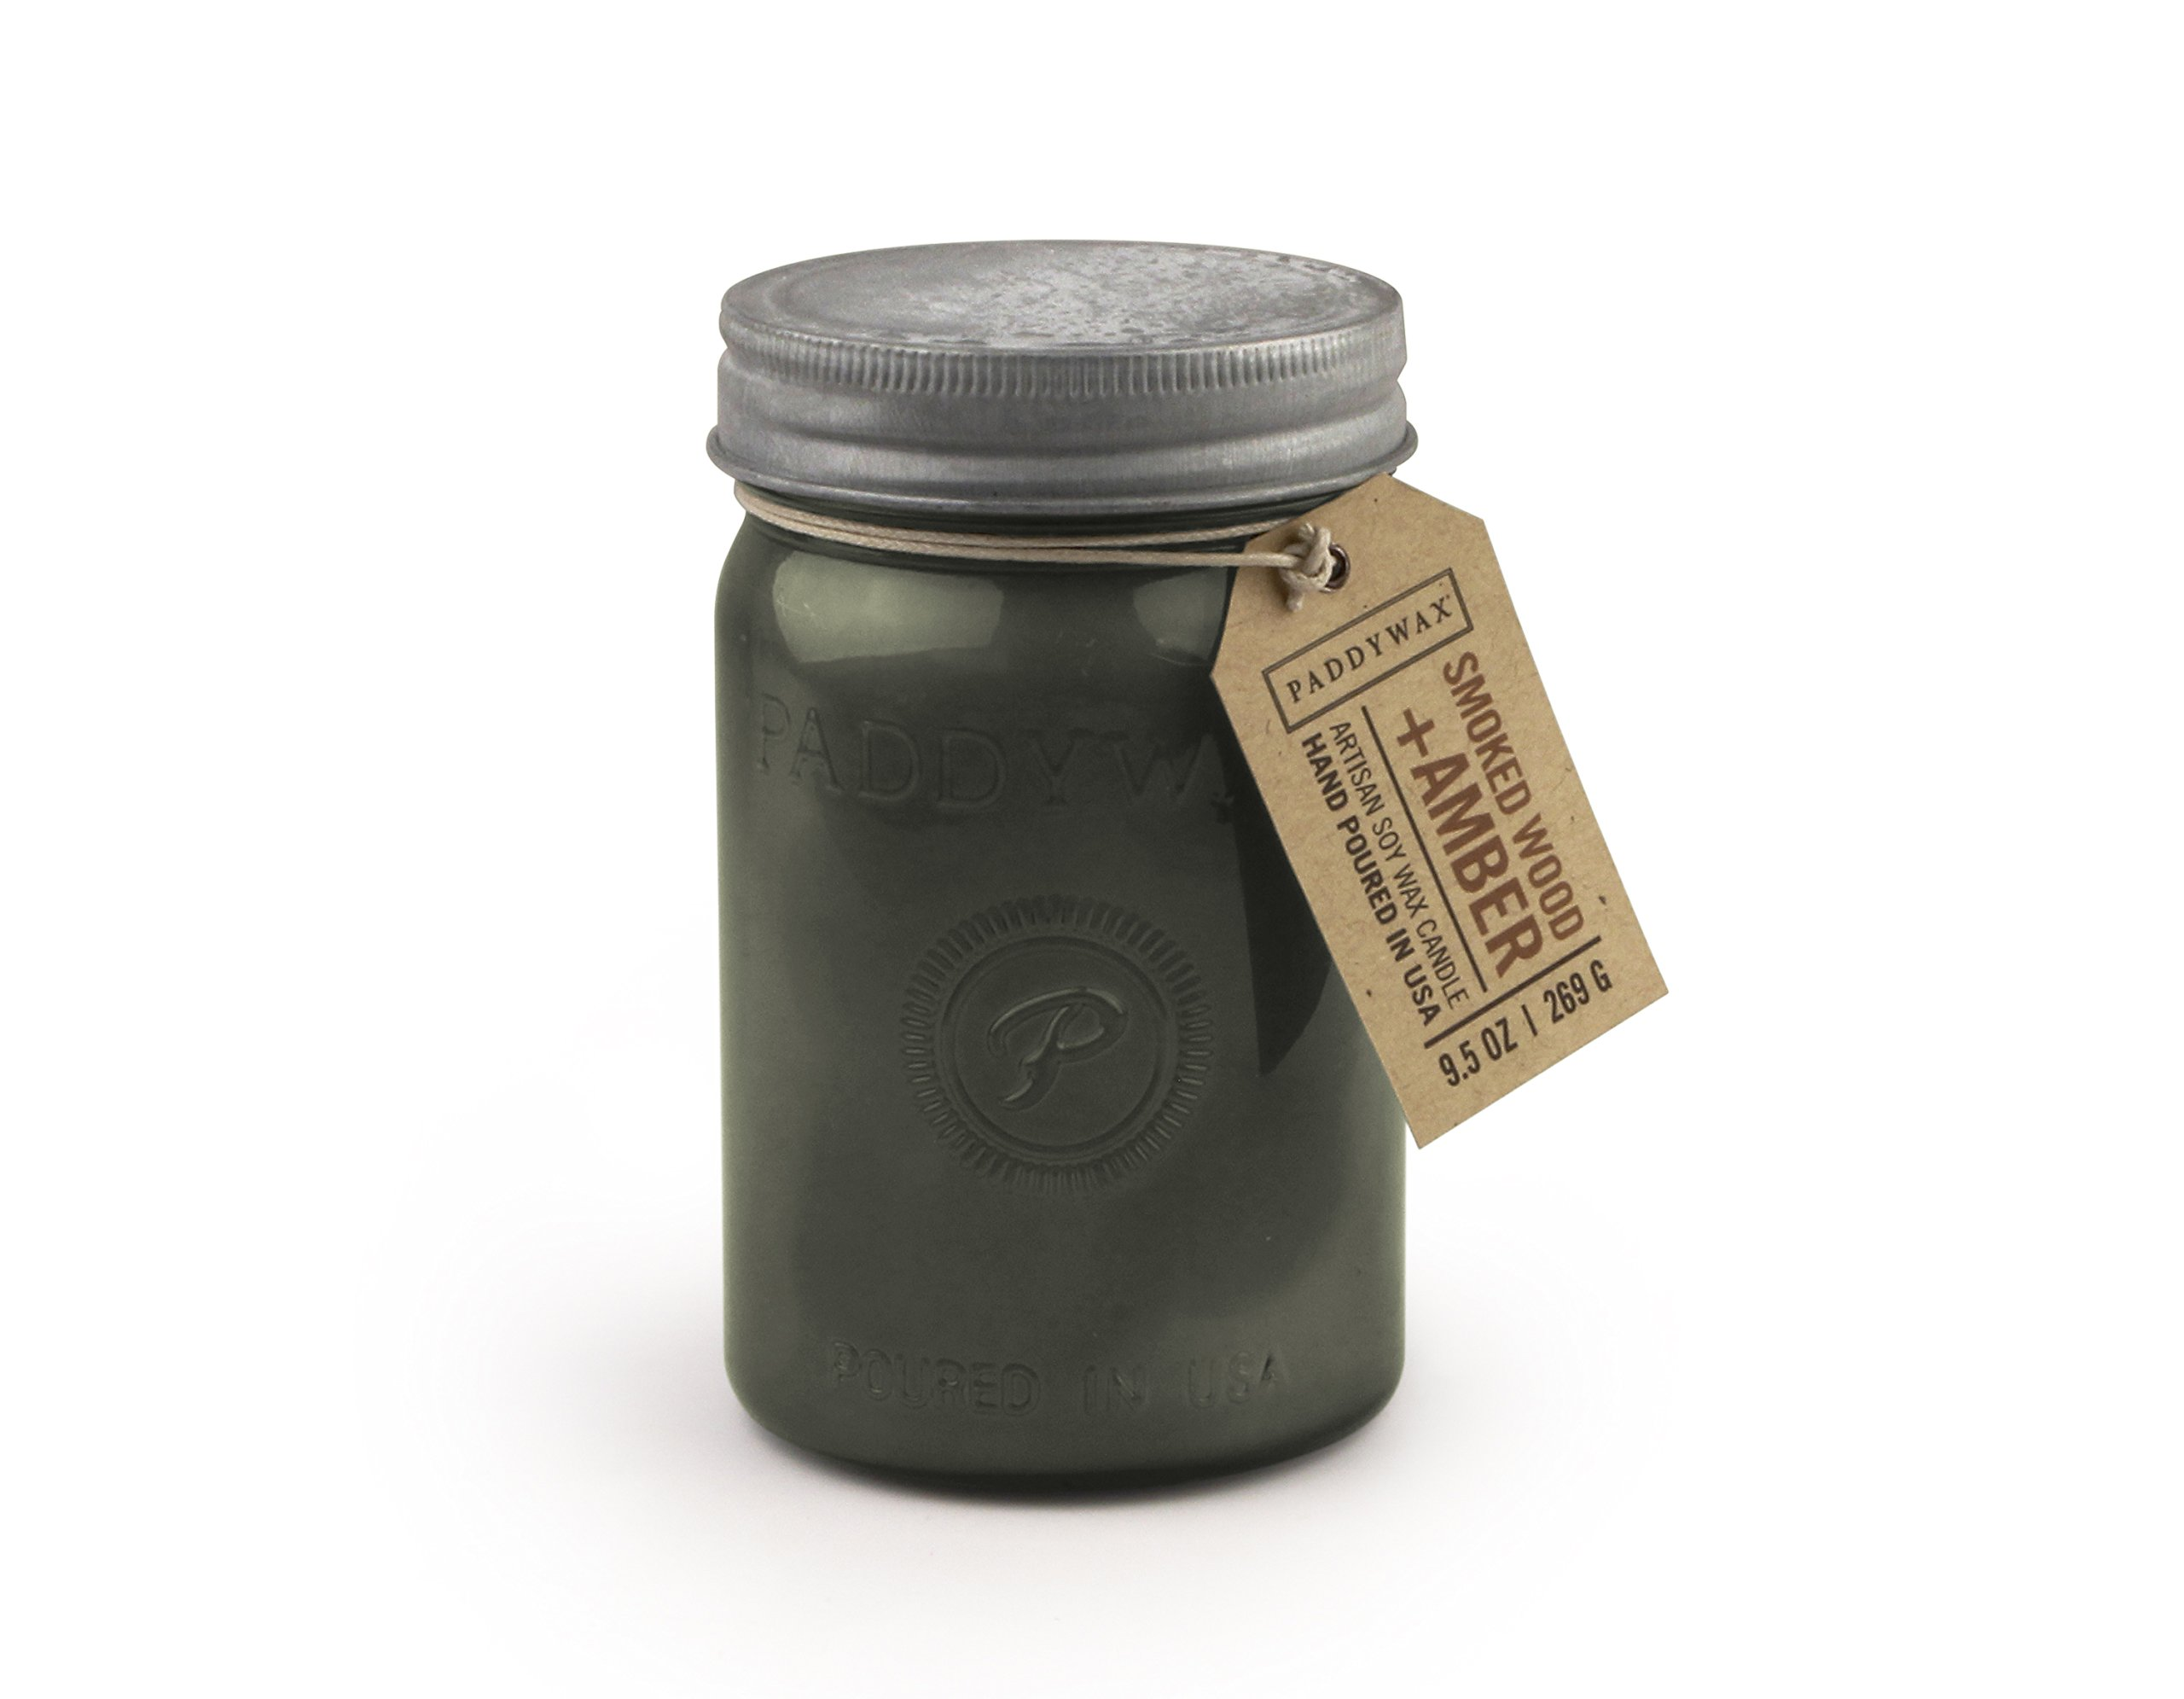 Paddywax Relish Collection Scented Soy Wax Jar Candle, 9.5-Ounce, Smoked Amber & Wood by Paddywax (Image #2)